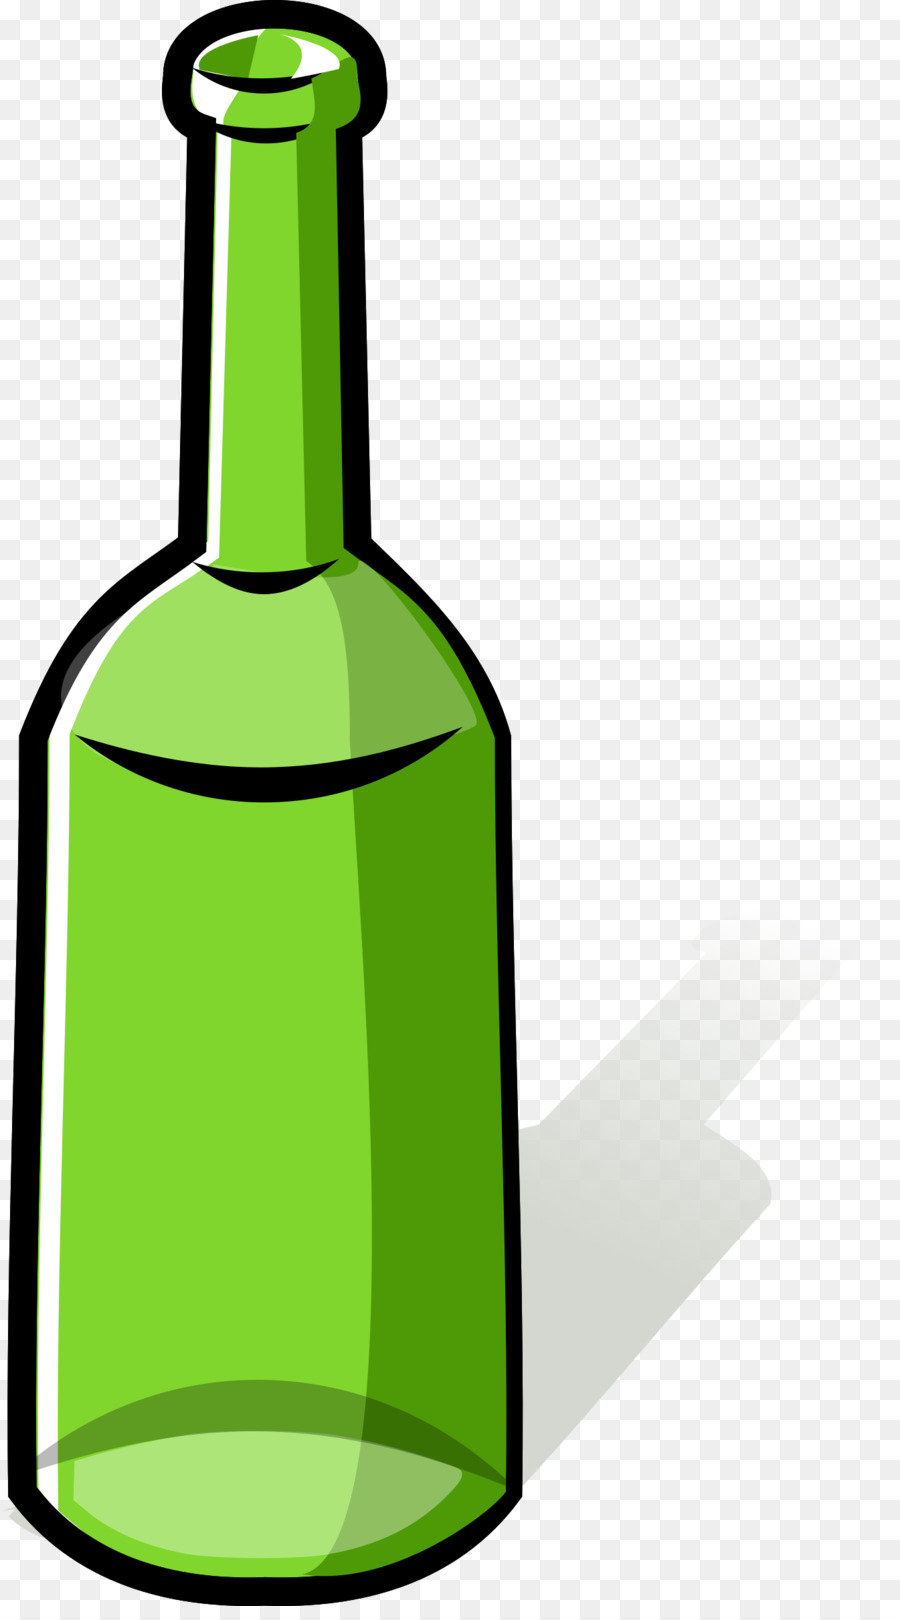 white wine glass bottle clip art bottle png download 1345 2400 rh kisspng com wine bottle clip art images wine bottle clipart png